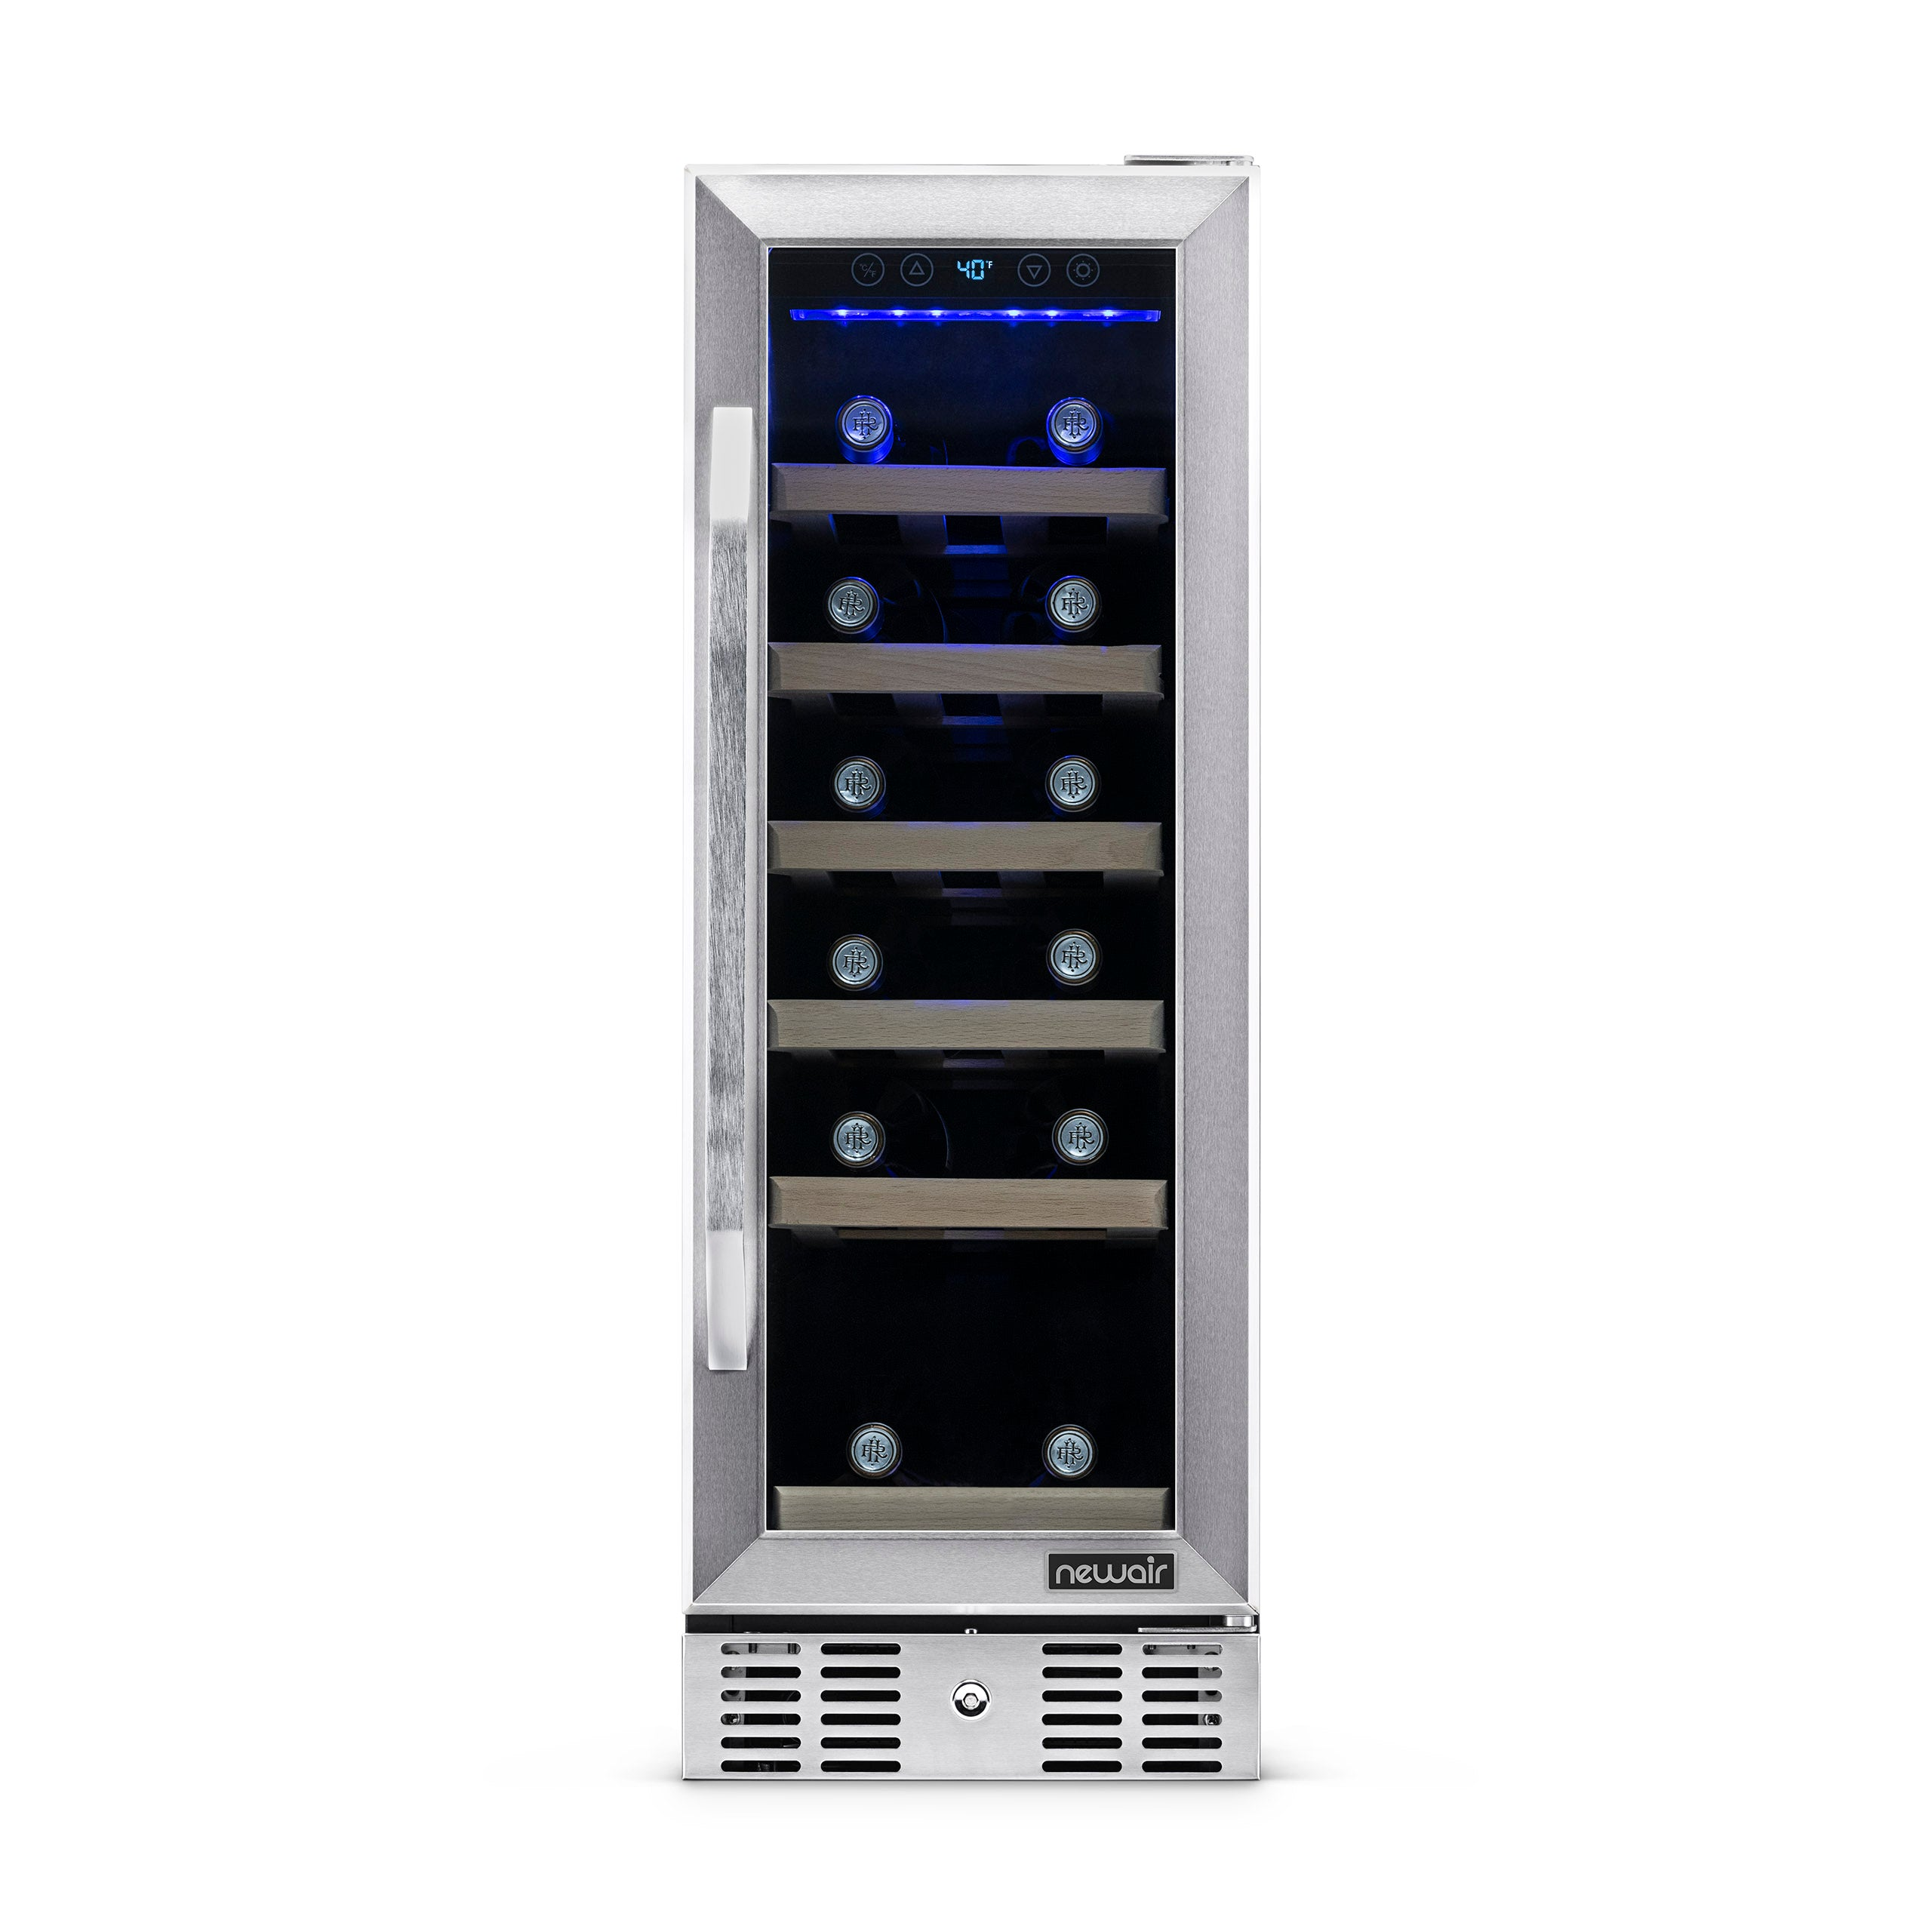 SMETA Compressor Wine Cooler 19 Bottle Freestanding LED Touchscreen Wine Cooler Refrigerator Black and Stainless Steel